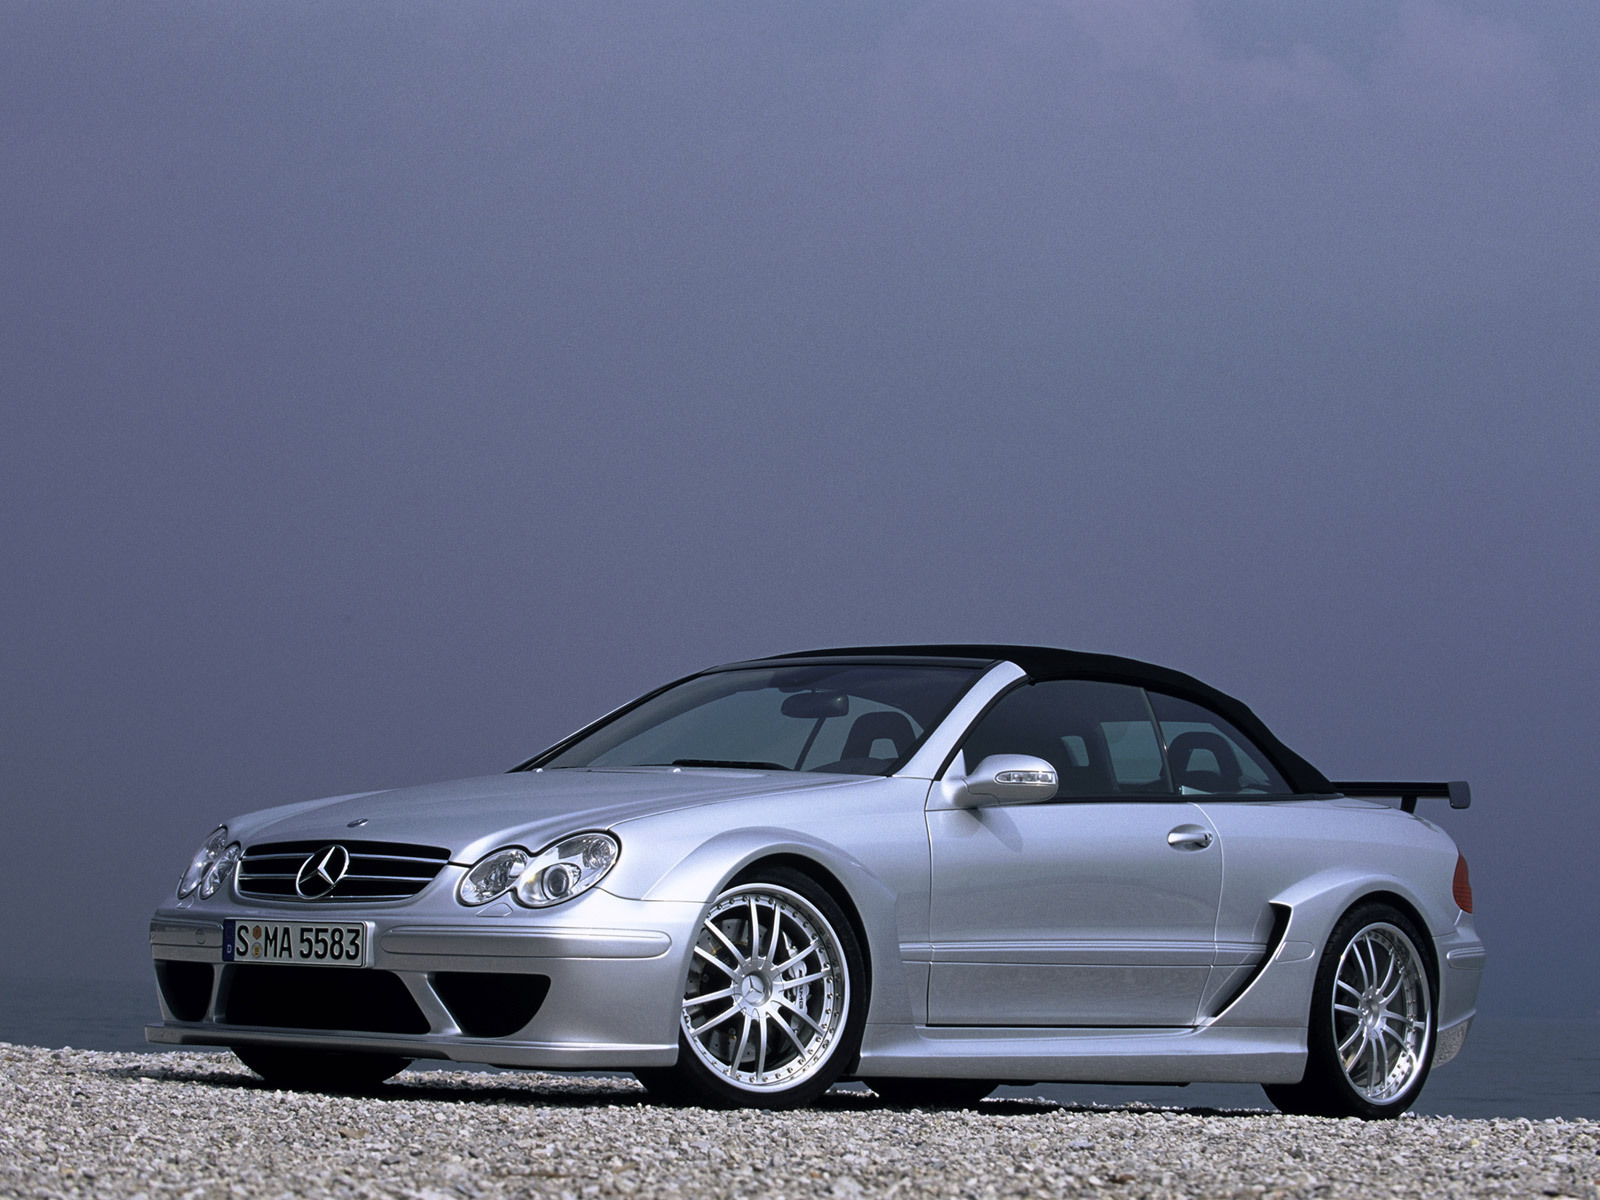 Mercedes-Benz CLK DTM AMG Cabriolet photo 06